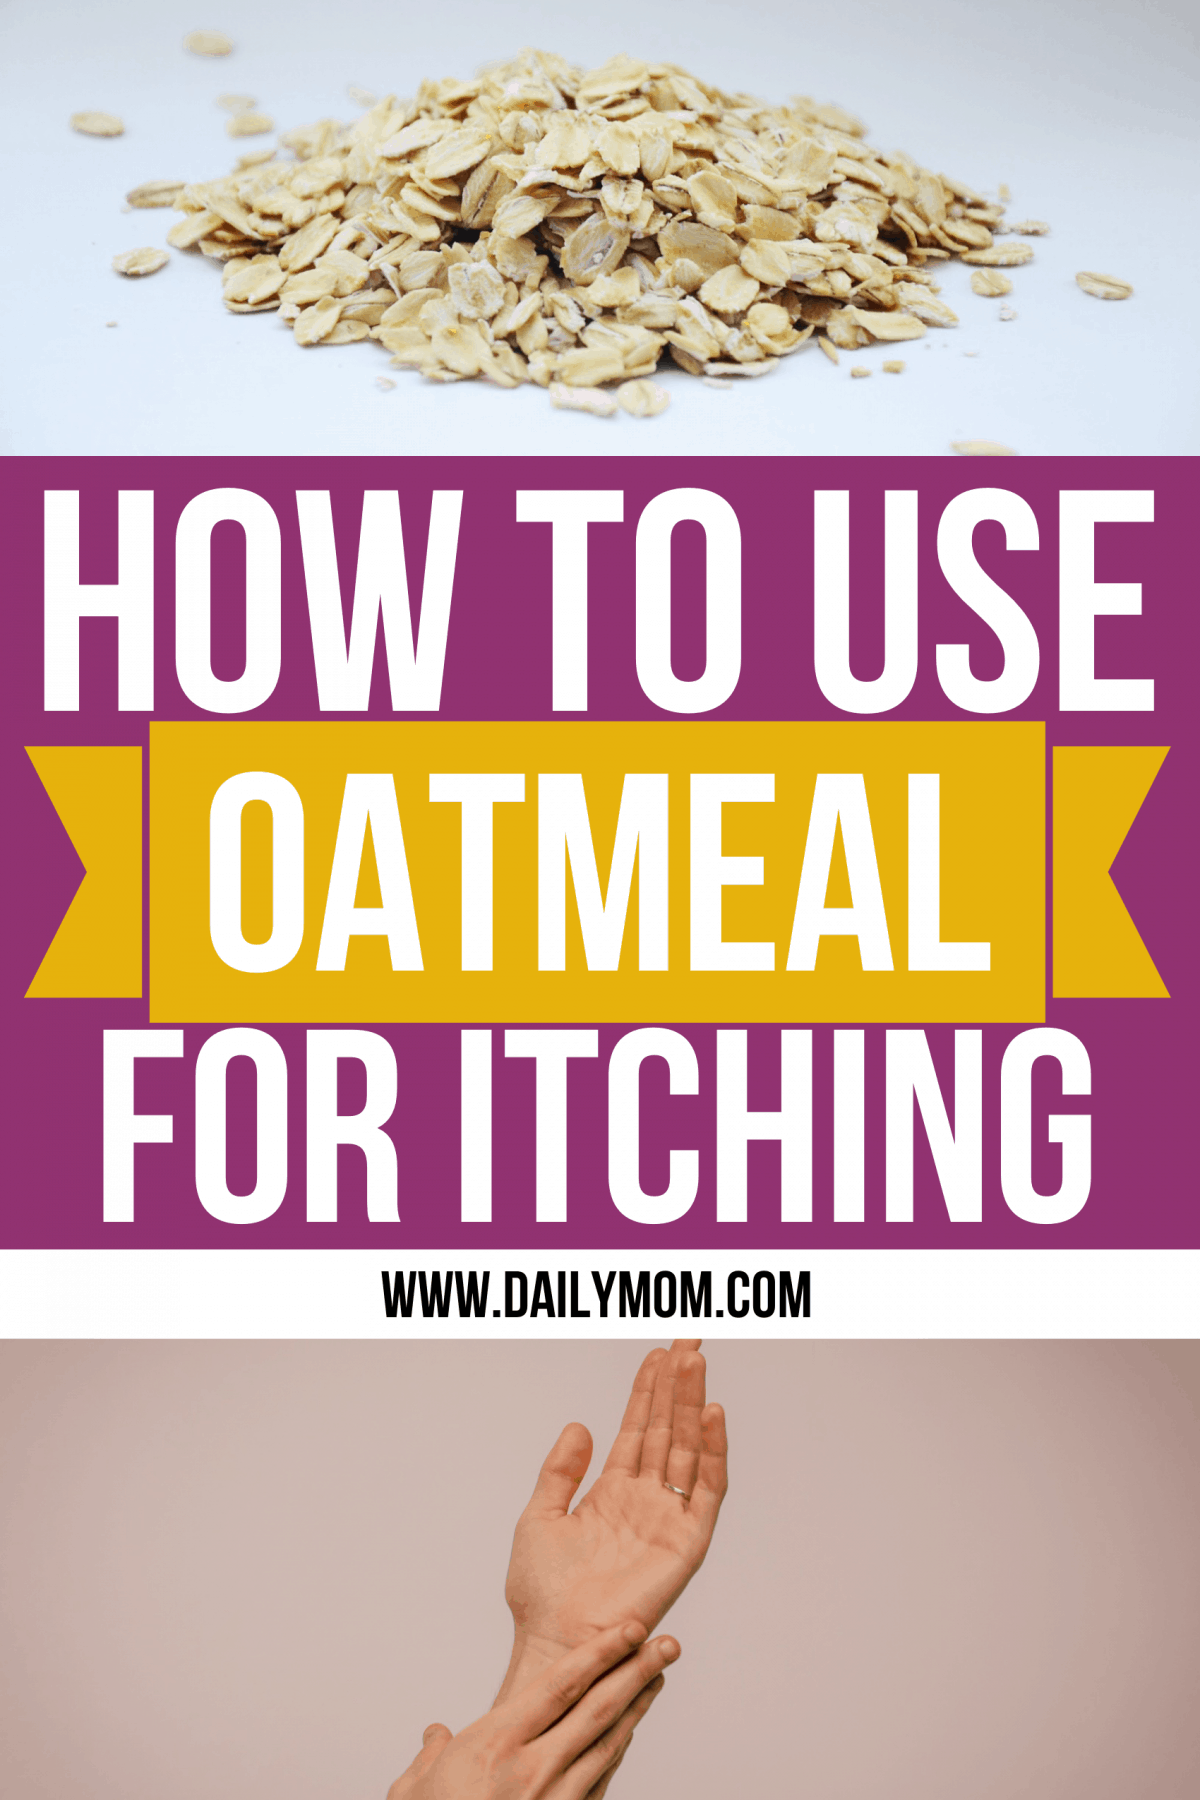 Daily mom parent portal How To Use Oatmeal For Itching